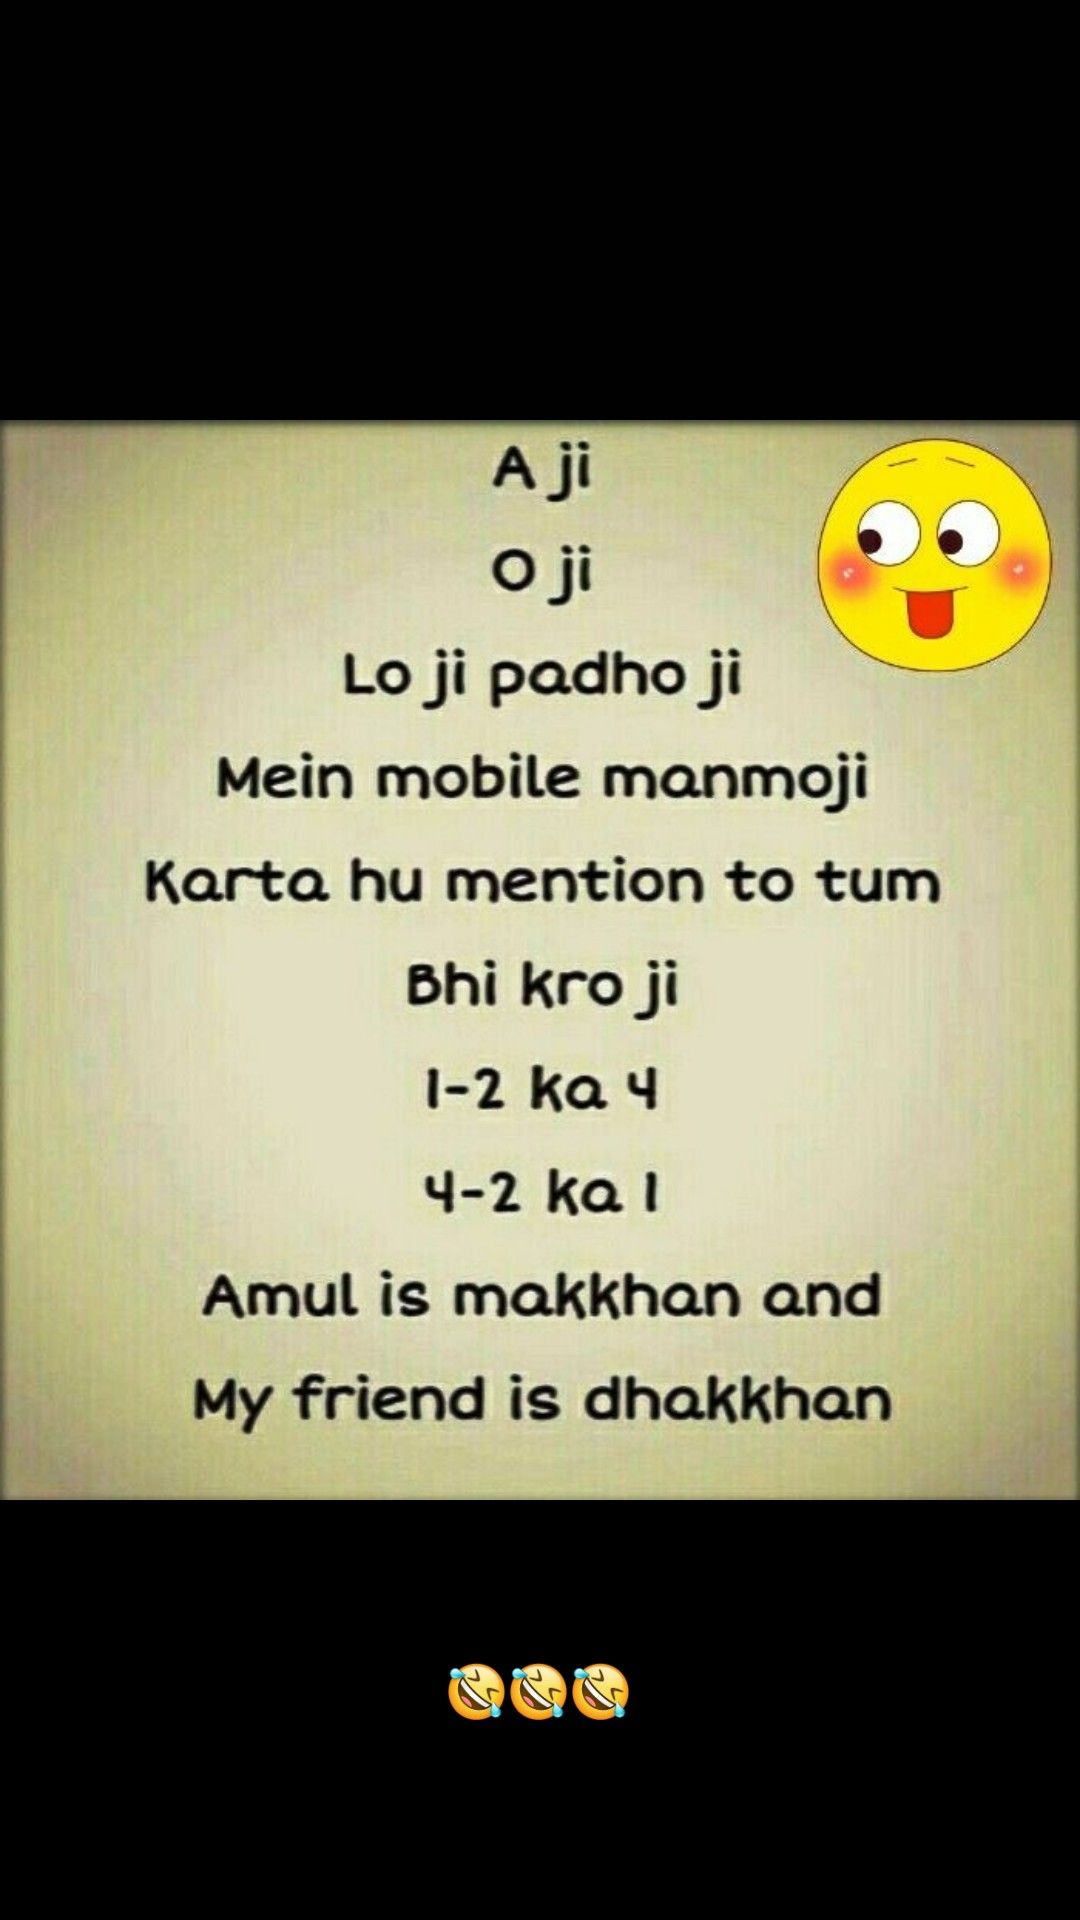 Best Funny Comments On Friends Photos In Hindi : funny, comments, friends, photos, hindi, Anamiya, Khanツ, Quotes, Funny,, Friendship, Friends, Funny